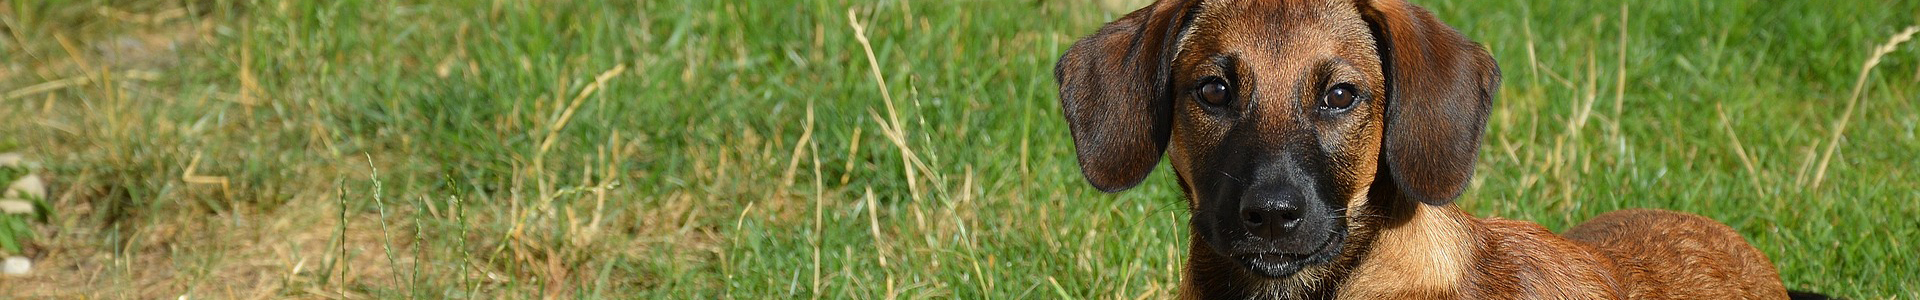 A small brown dog with floppy ears and a black muzzle looks at the viewer from a field of green grass.